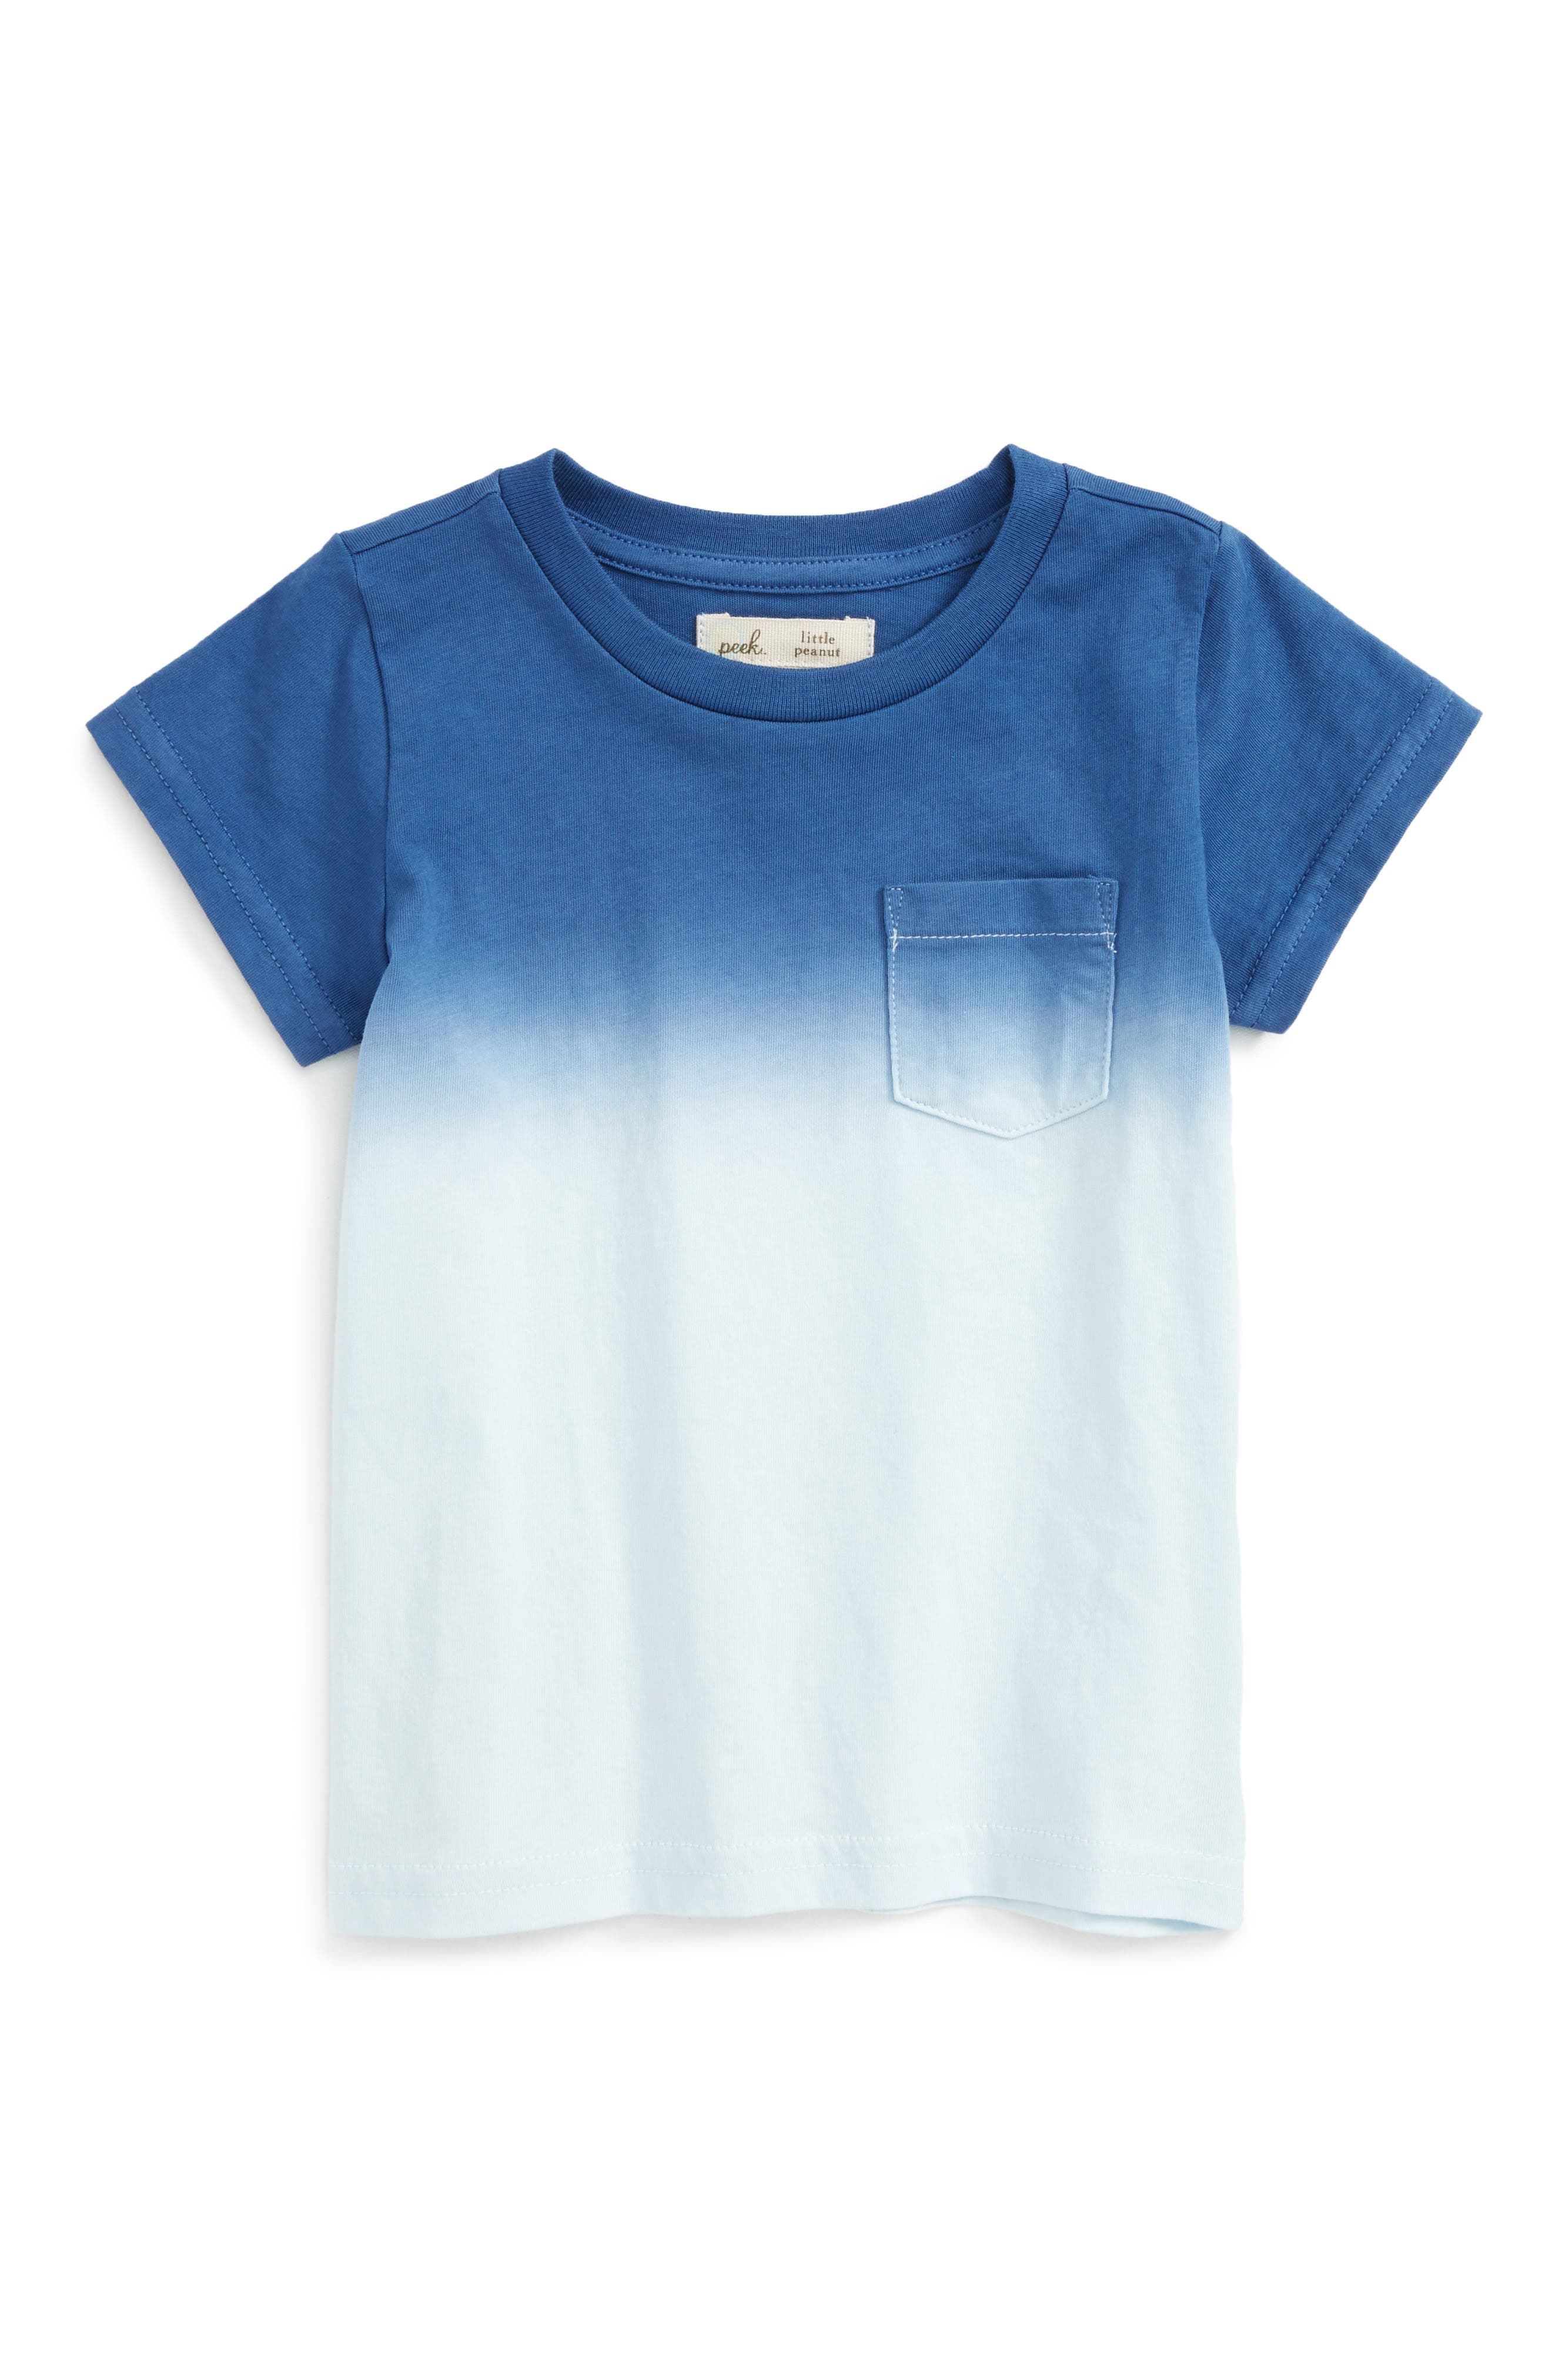 Main Image - Peek Dip Dye Pocket T-Shirt (Baby Boys)